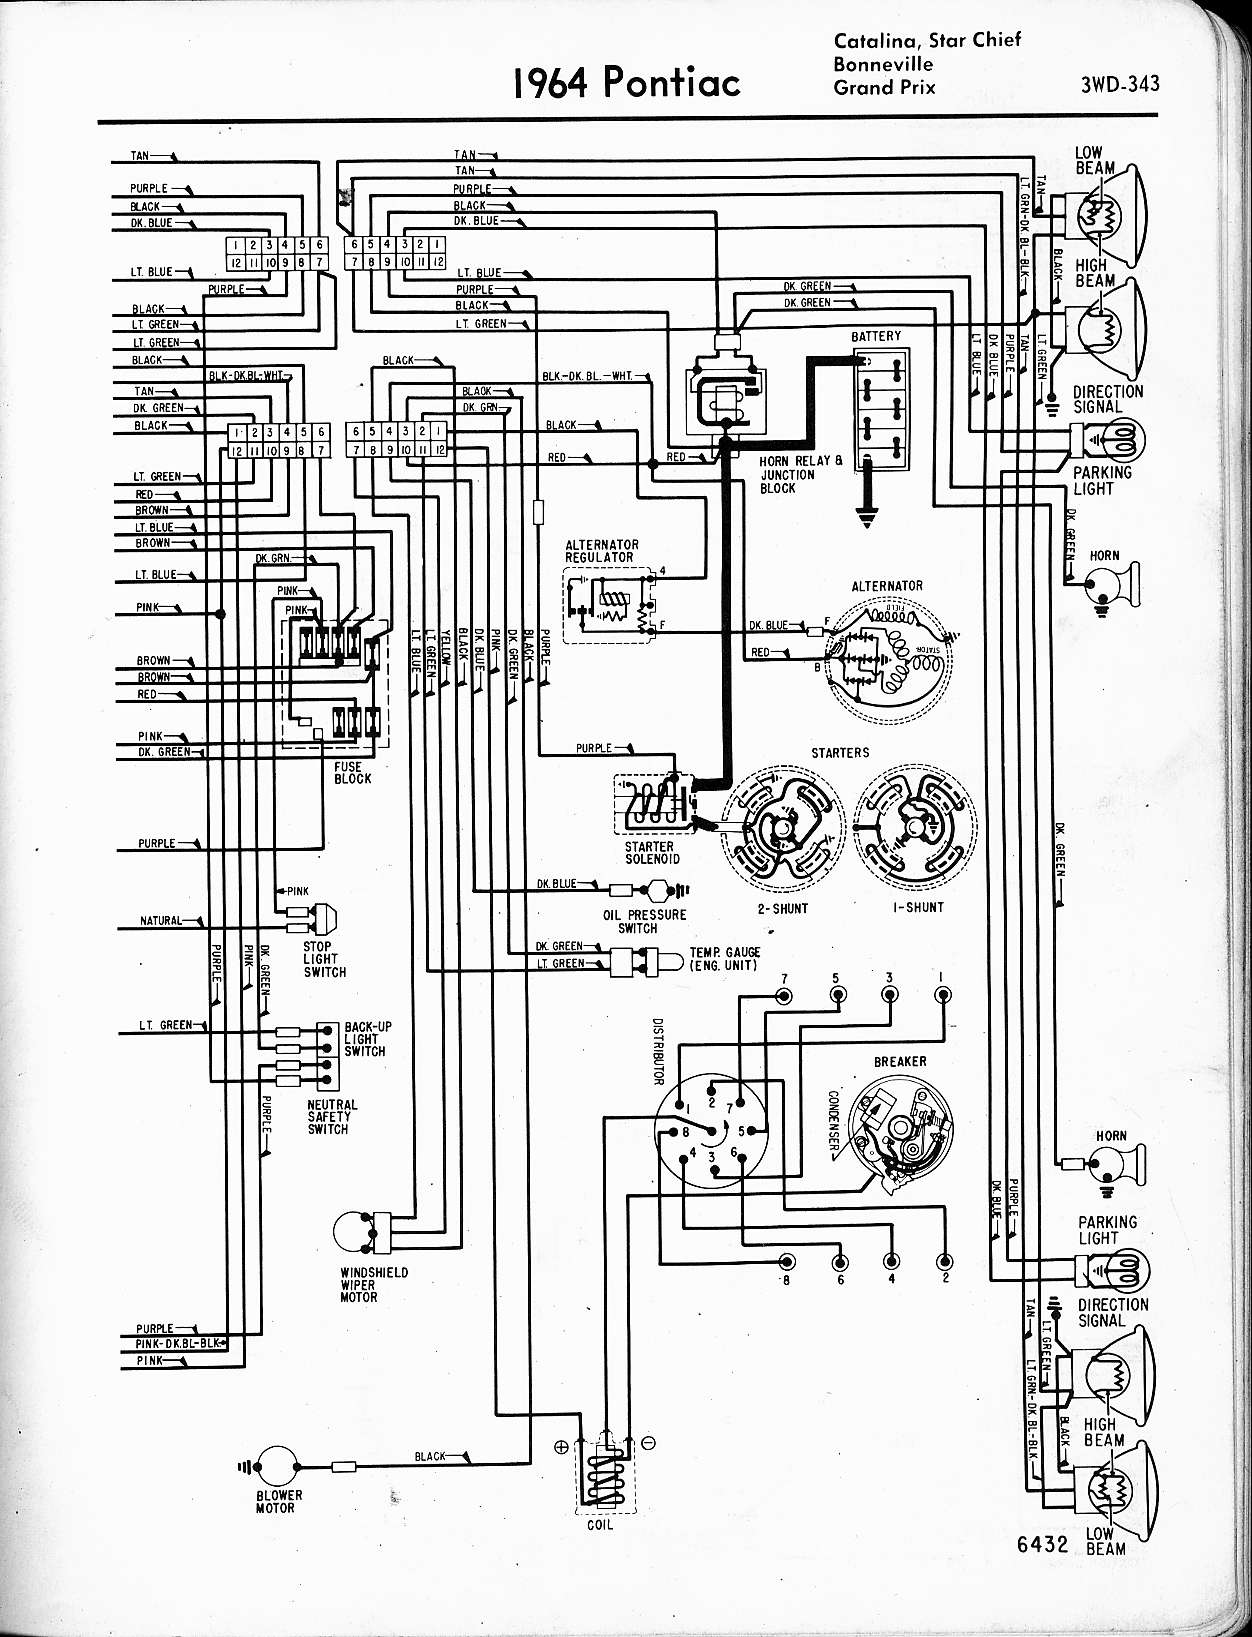 1968 Pontiac Catalina Wiring Diagram | Wiring Liry on